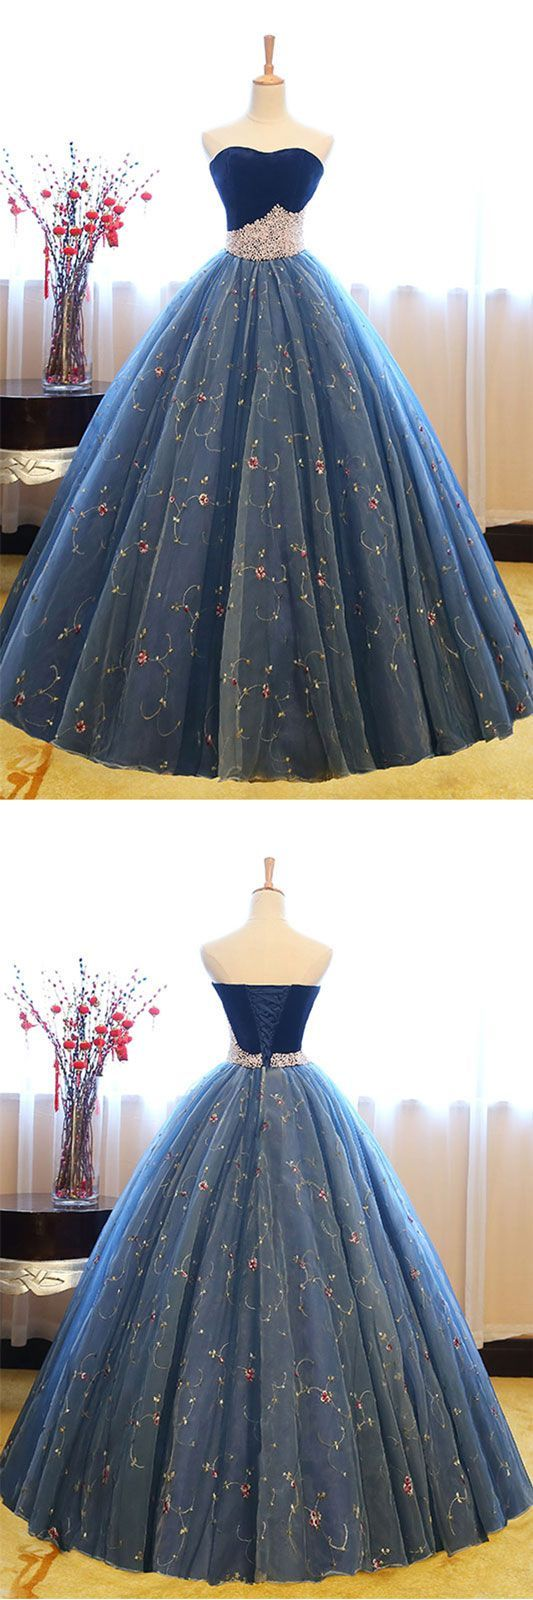 Blue Sweetheart Neck Tulle Long Prom Gown Blue Sweet 16 Dress M0474 Blue Lace Prom Dress Prom Dresses Gowns [ 1600 x 533 Pixel ]